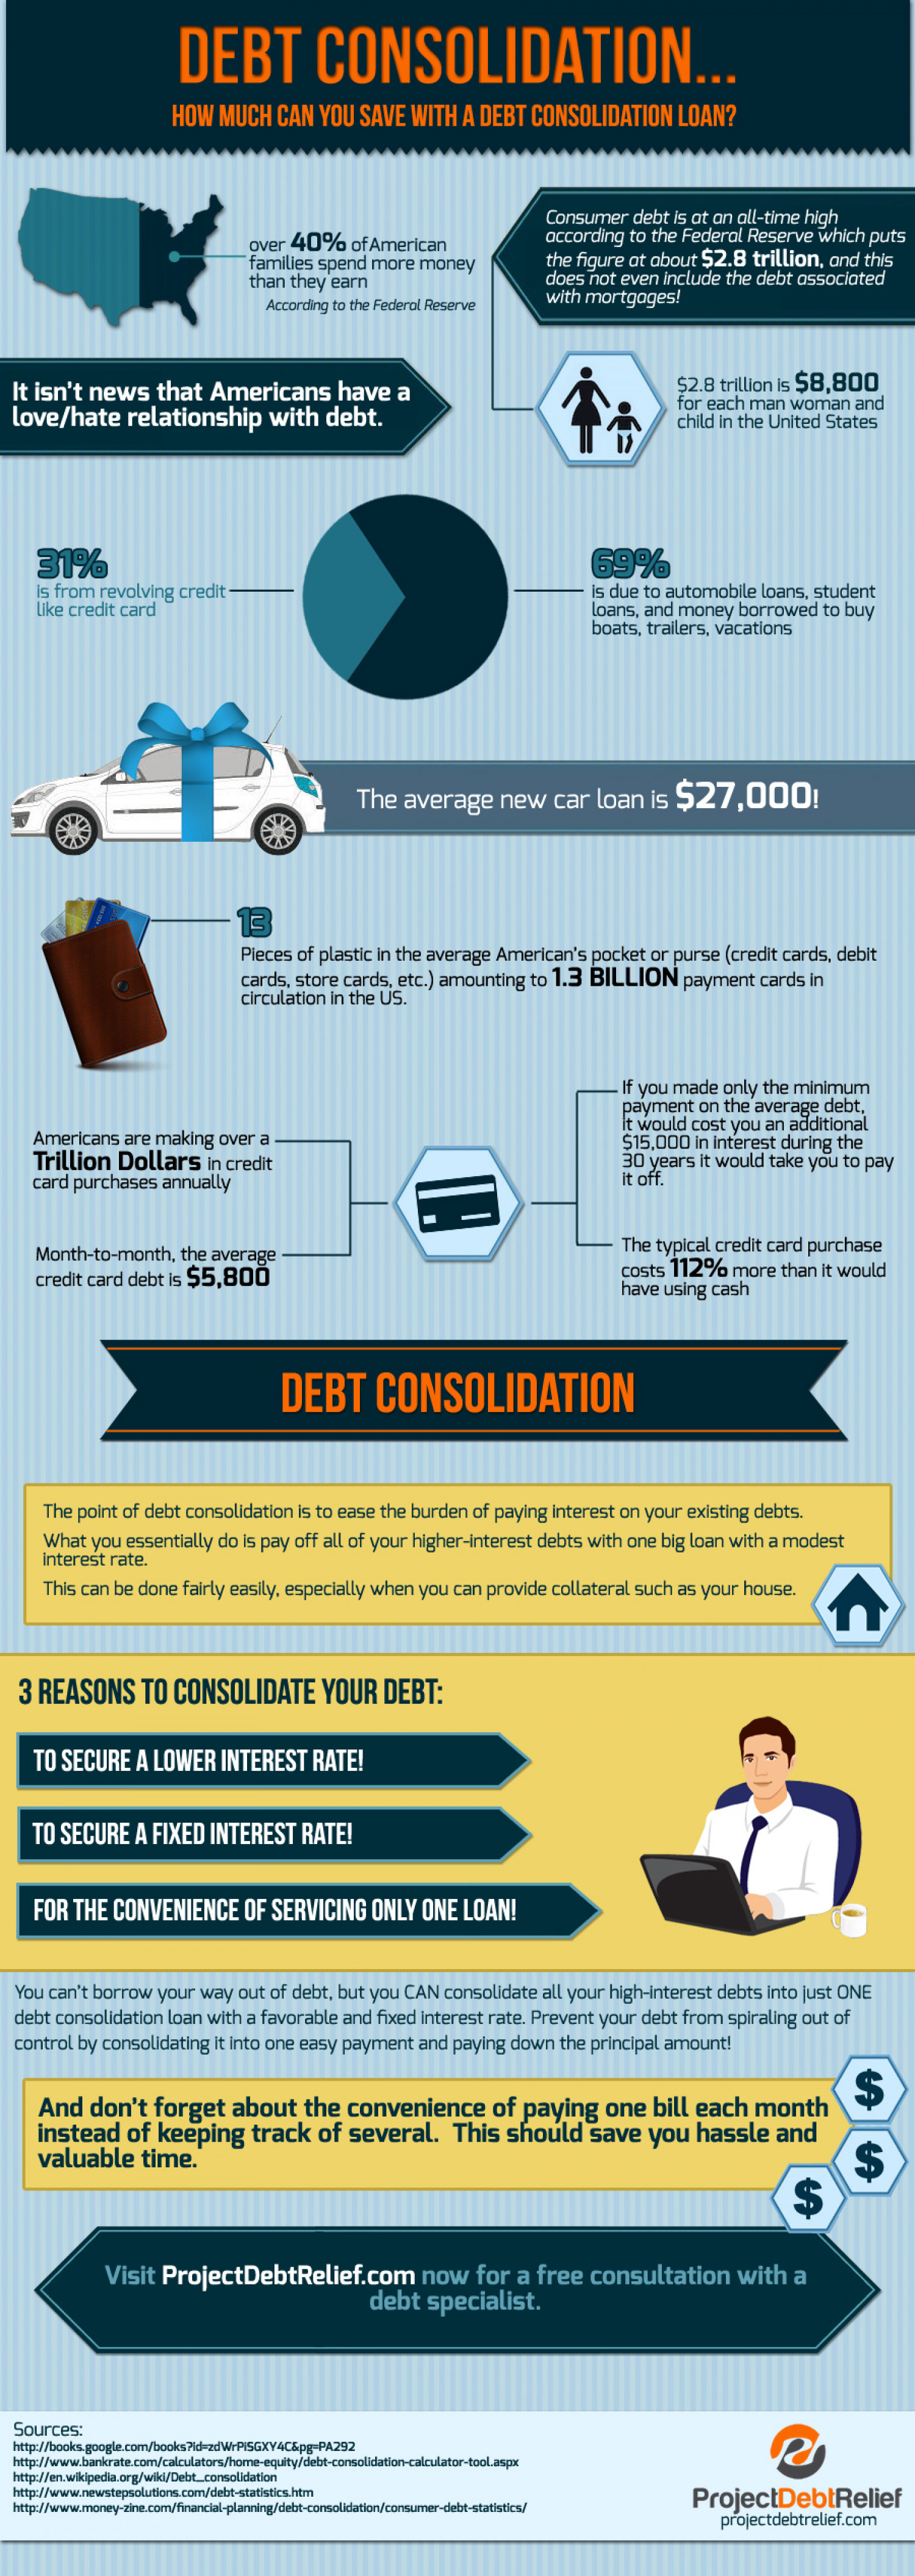 Debt Consolidation...How Much Can You Save With a Debt Consolidation Loan?  Infographic